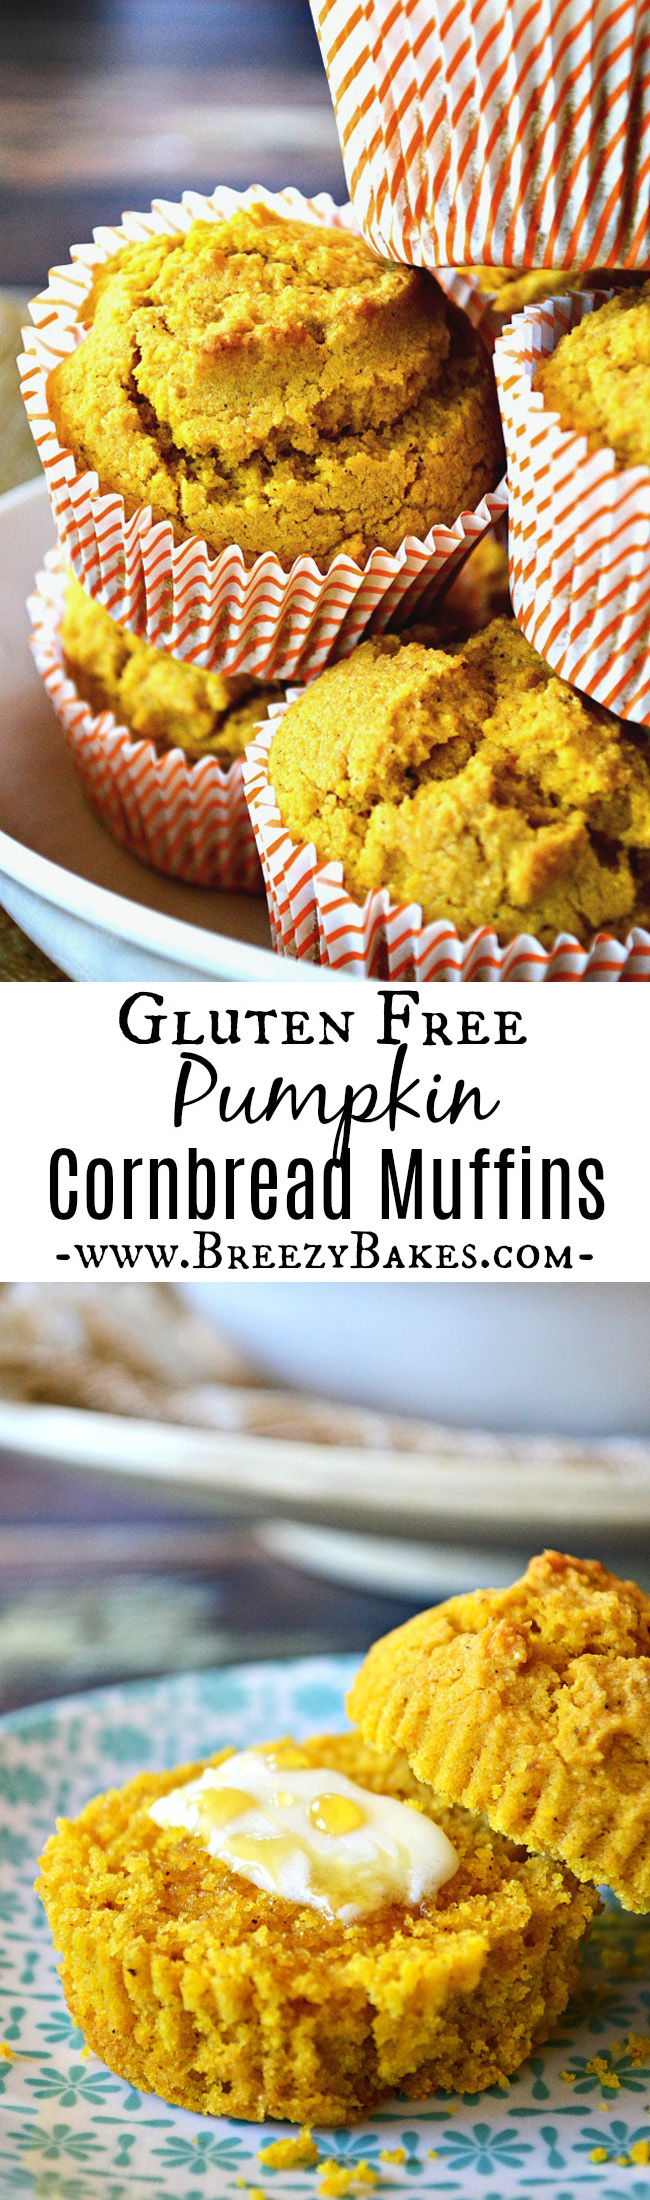 Welcome fall with these light and fluffy Gluten Free Pumpkin Cornbread Muffins. They're slightly sweet with a touch of cinnamon and a hint of pumpkin. Hello holidays!